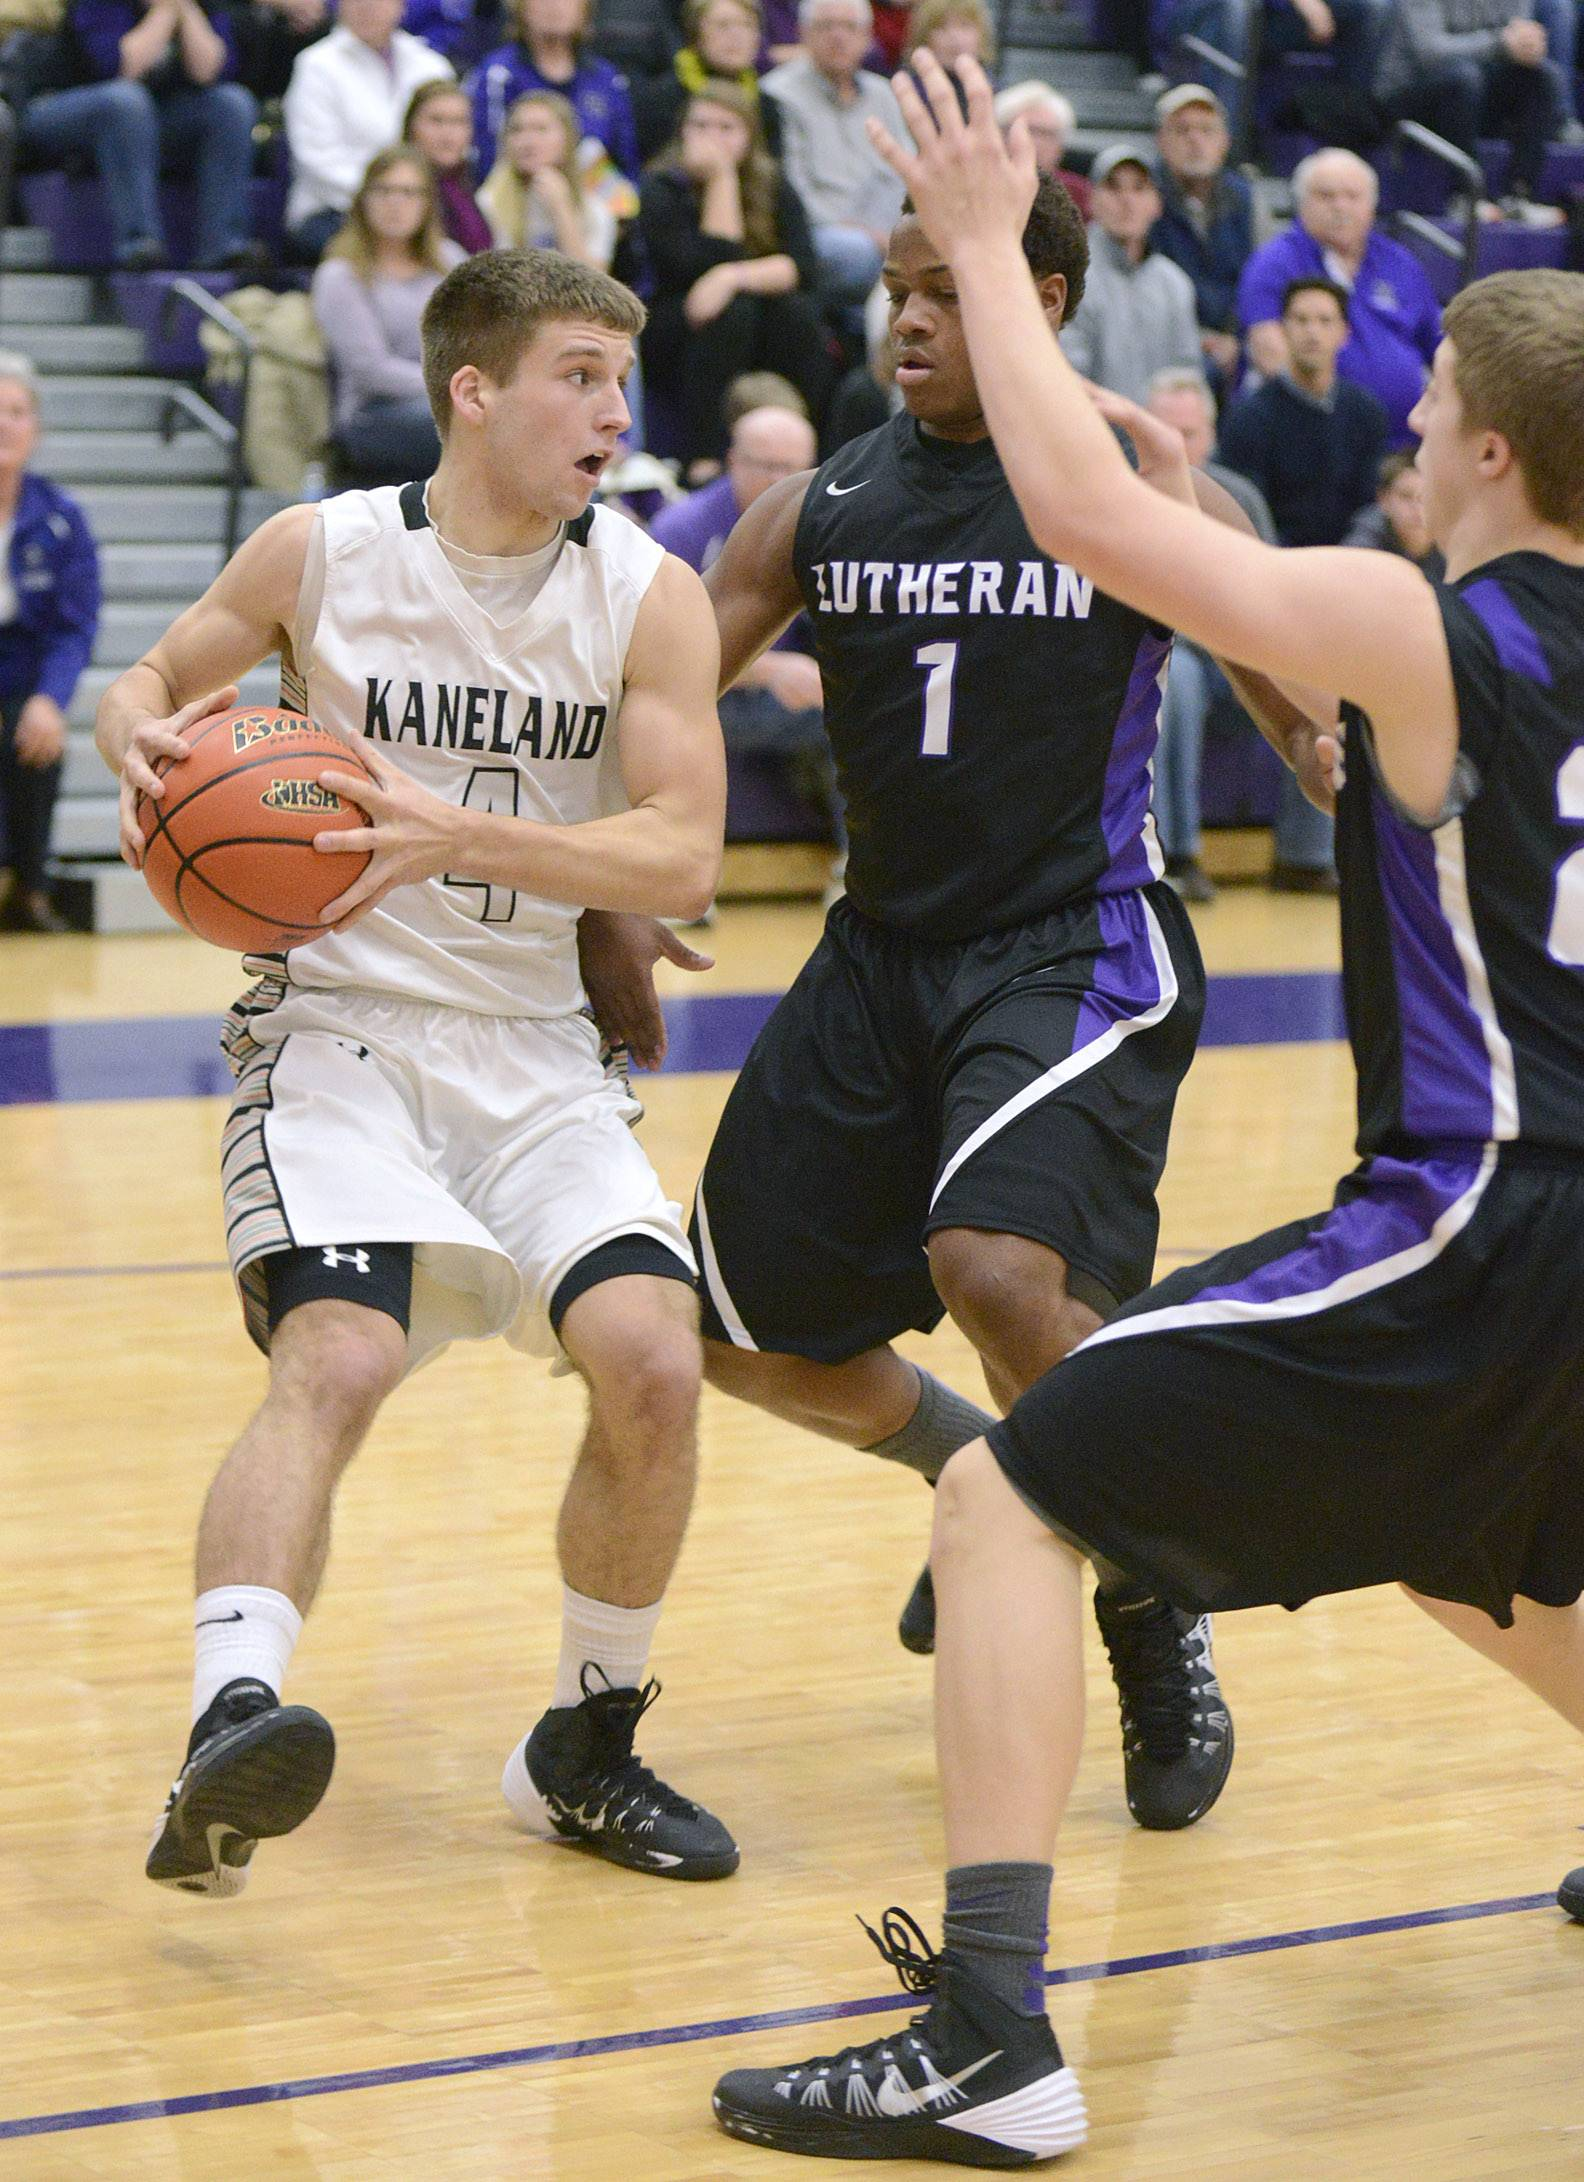 Kaneland's Drew David looks to pass around a block by Rockford Lutheran's James Robinson (1) and Joseph Kellen in the first quarter of the Class 3A sectional game at Hampshire HIgh School on Tuesday, March 11.